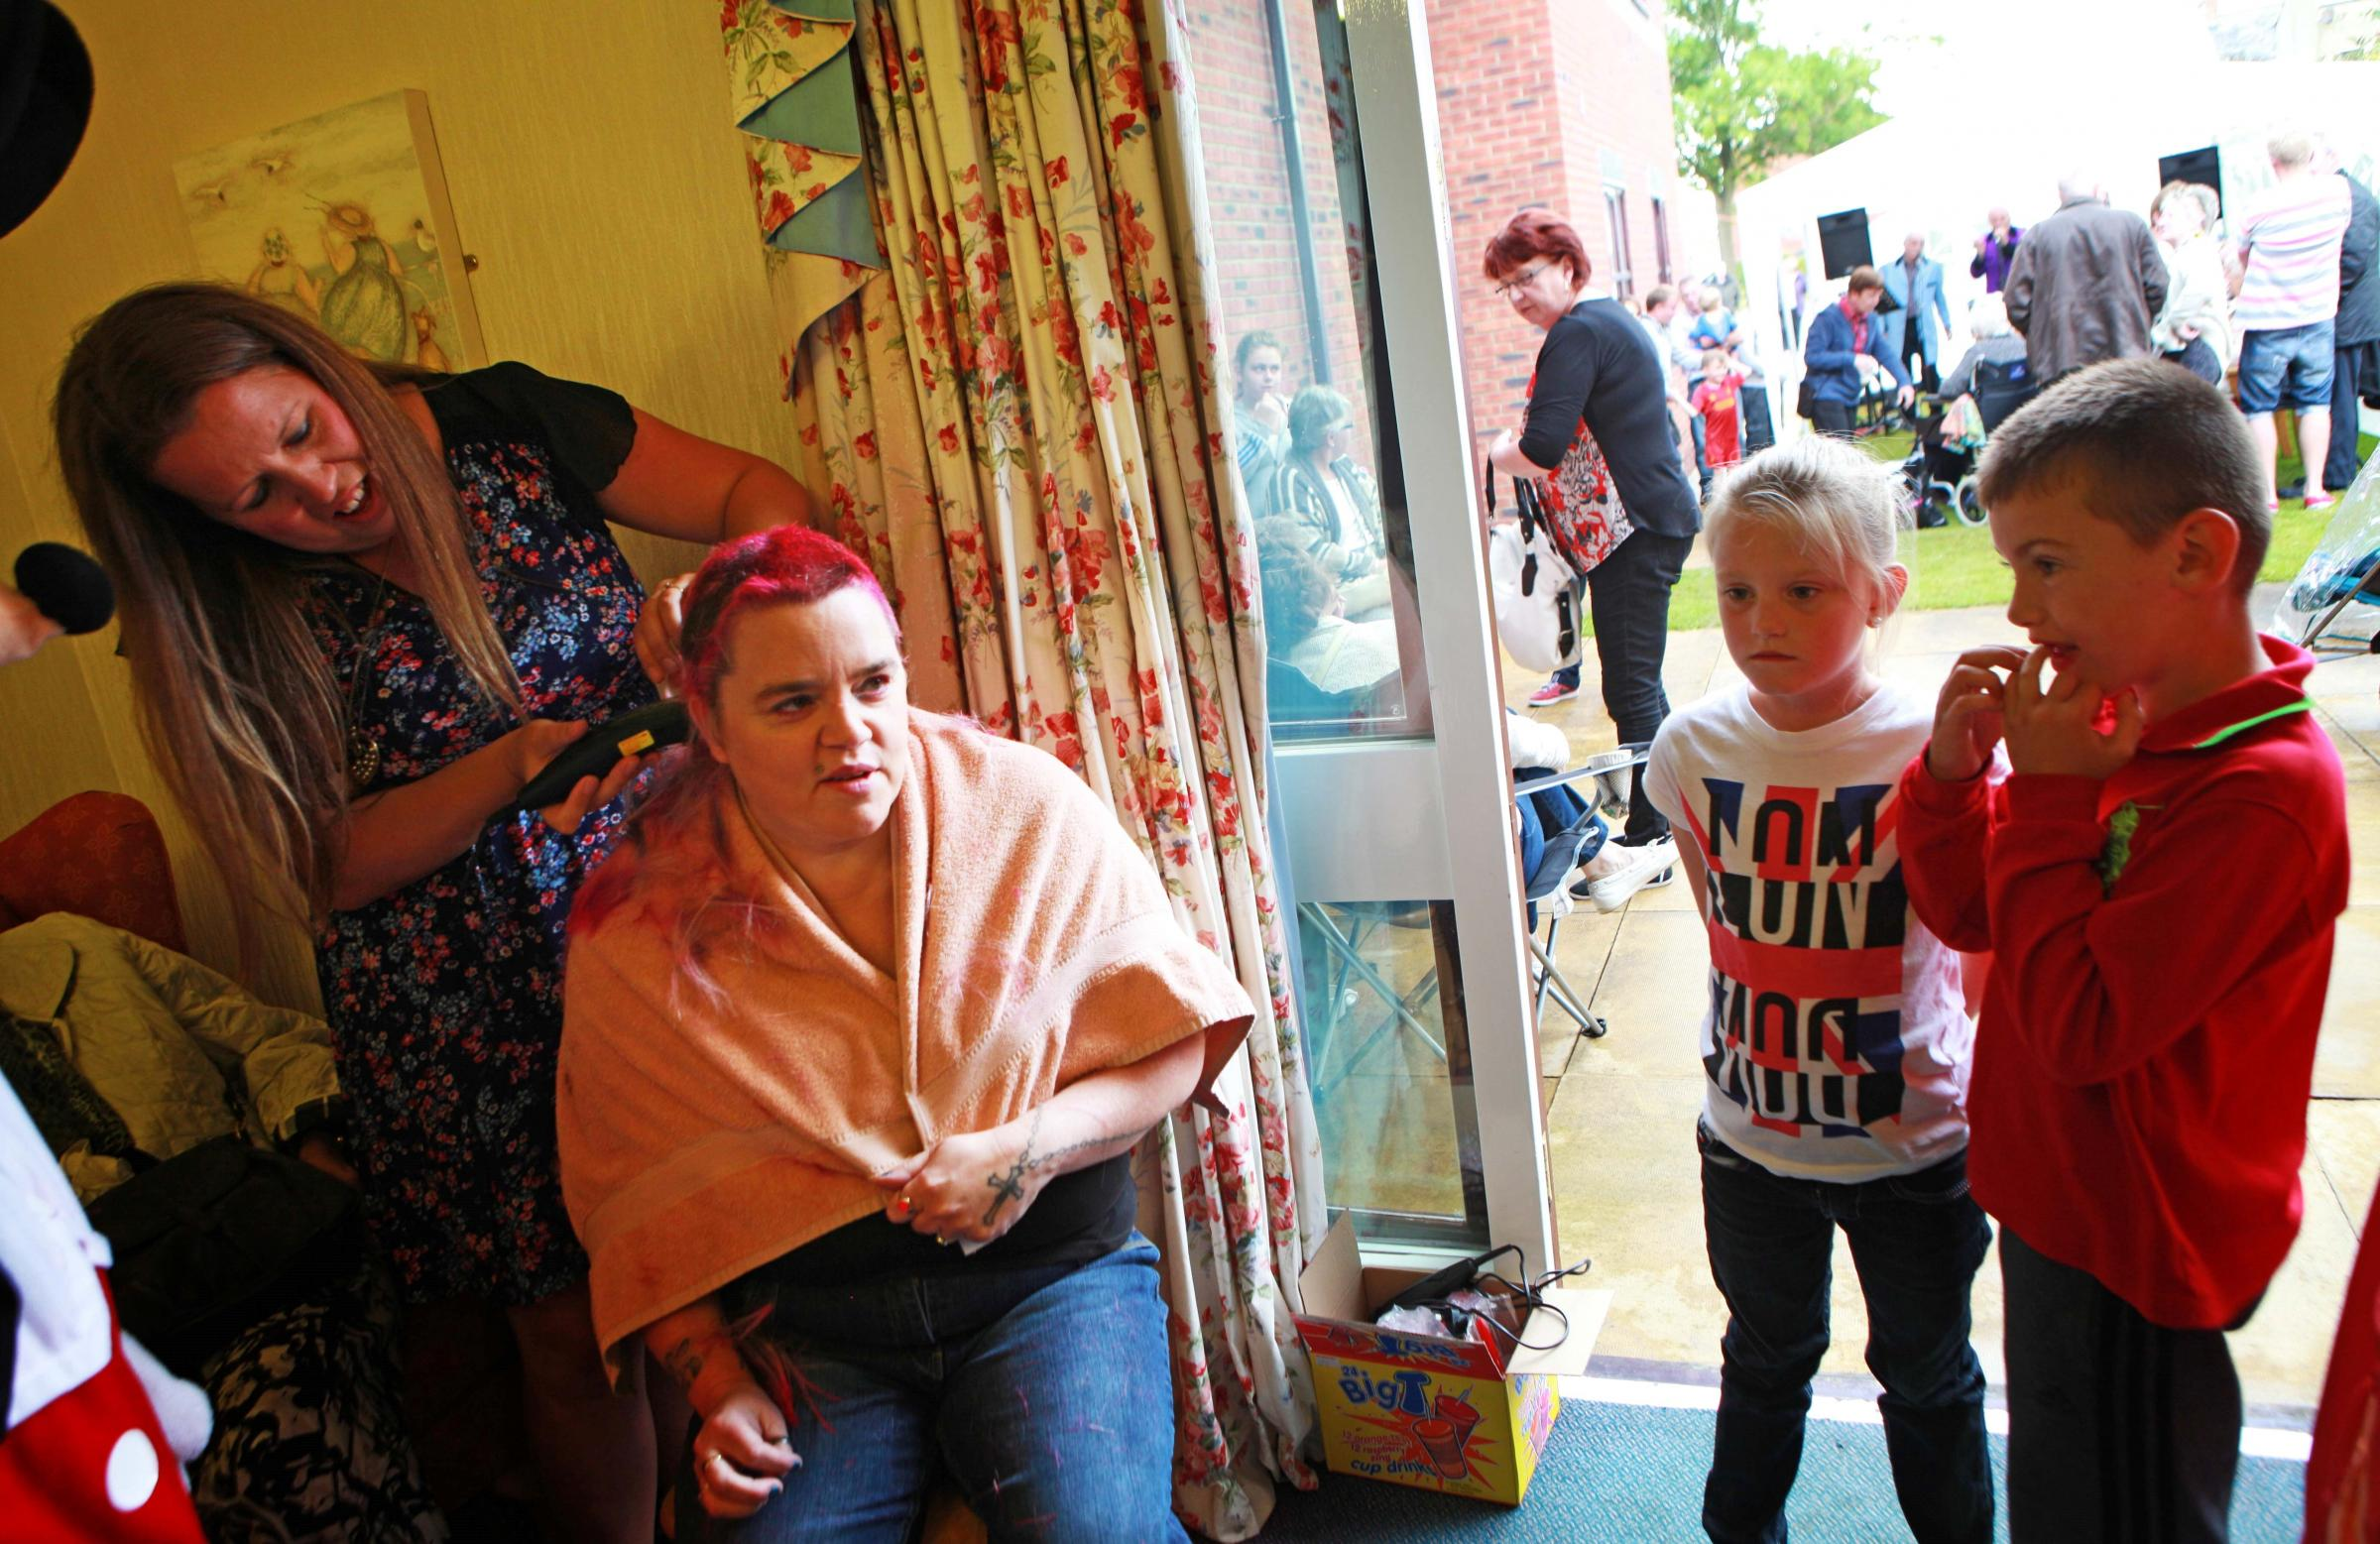 Care home fun day raises more than £500 for charity